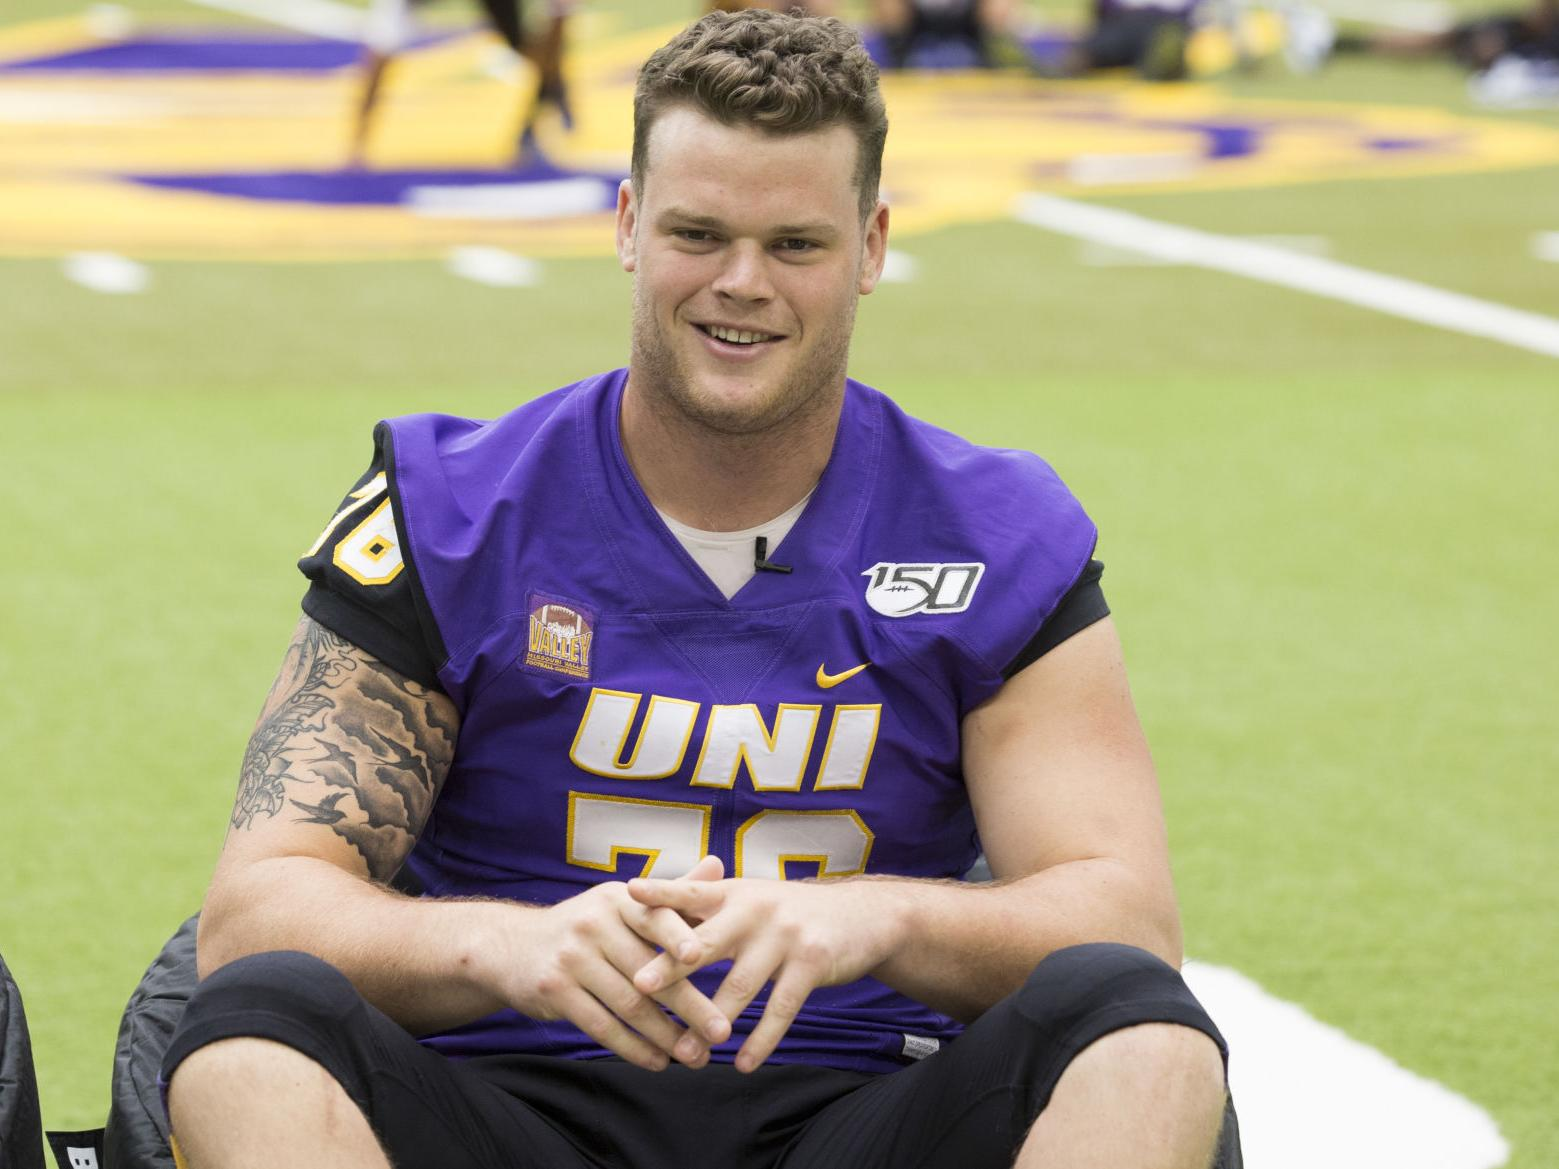 UNI football: Farley proud of Brown's Senior Bowl invite | PantherMania.net  | Football | wcfcourier.com